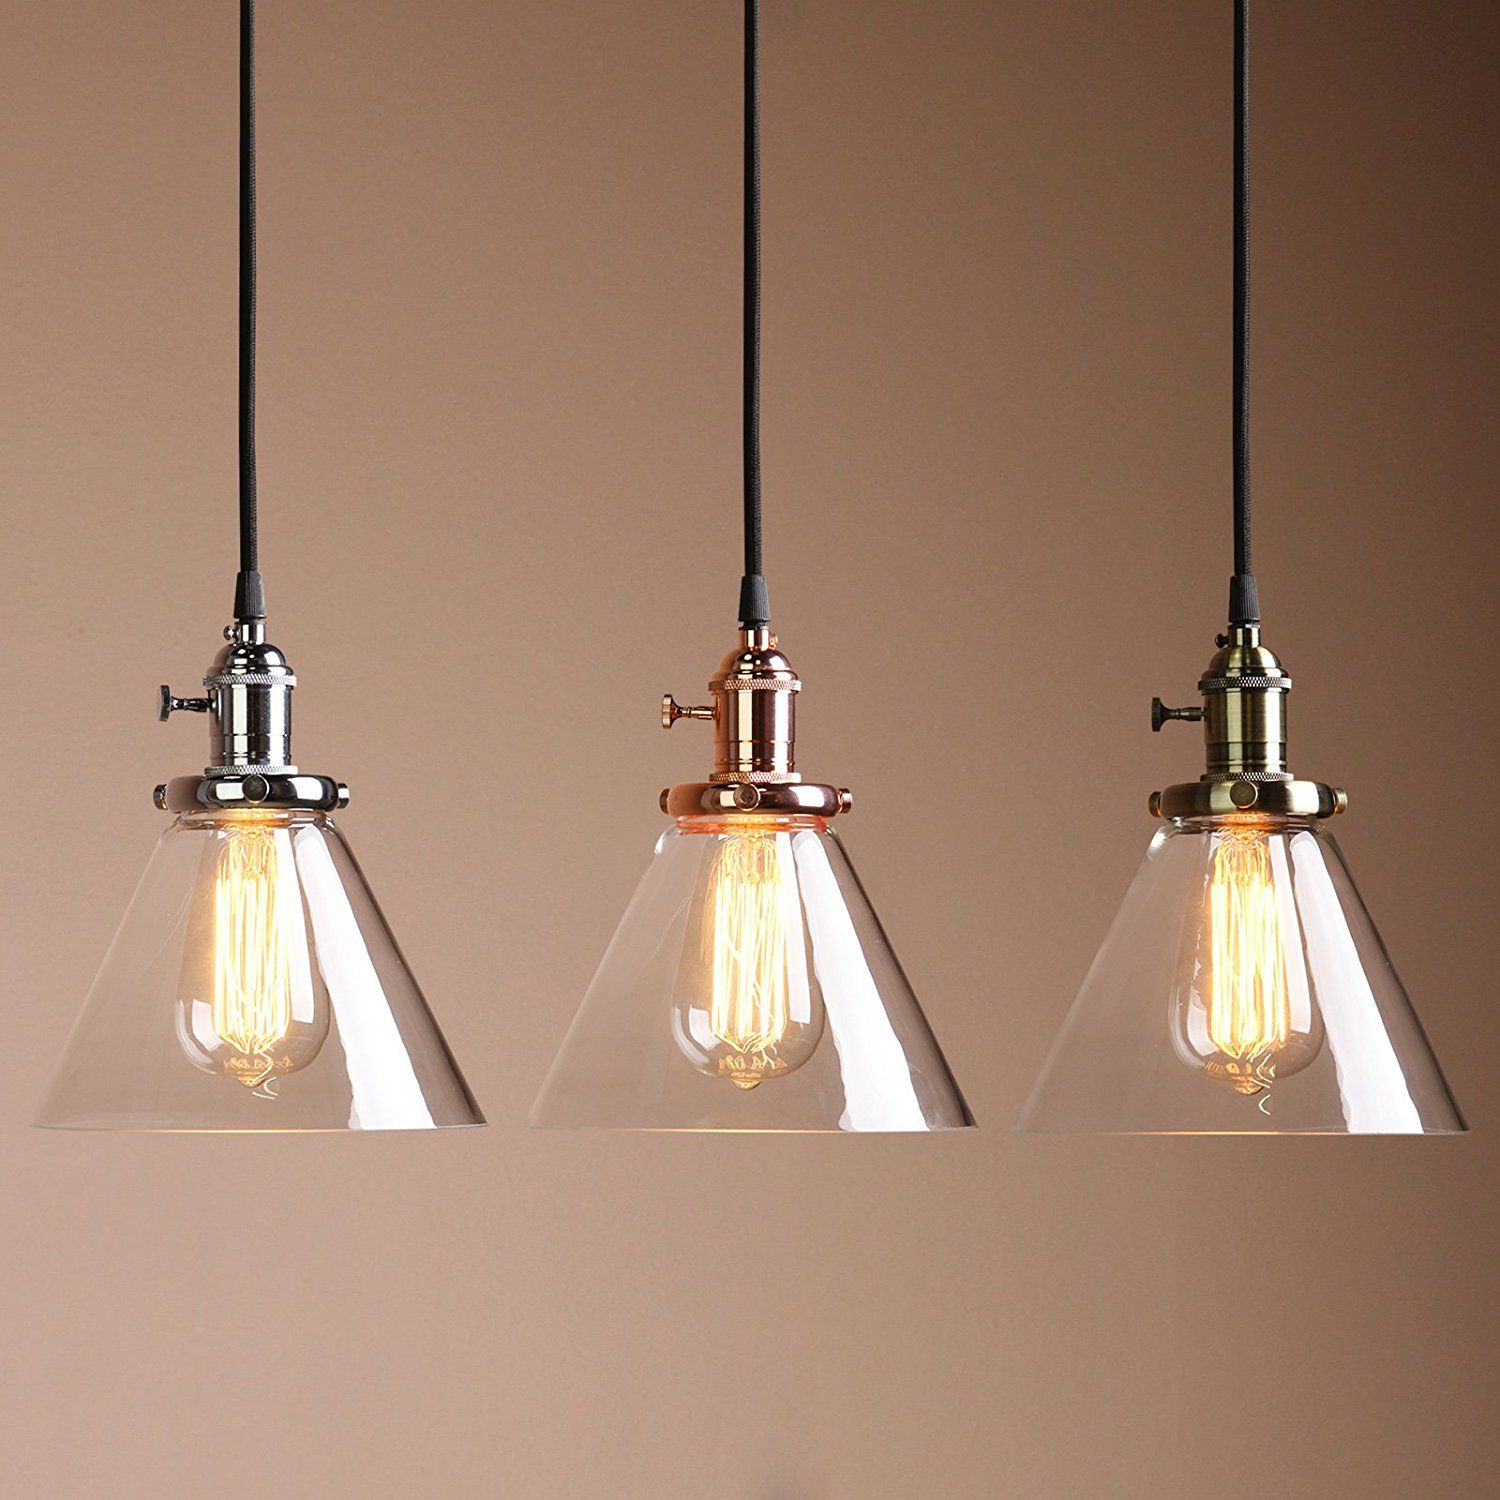 Permo Industrial Vintage Pendant Light With Funnel Flared Glass - Kitchen pendant lighting ebay